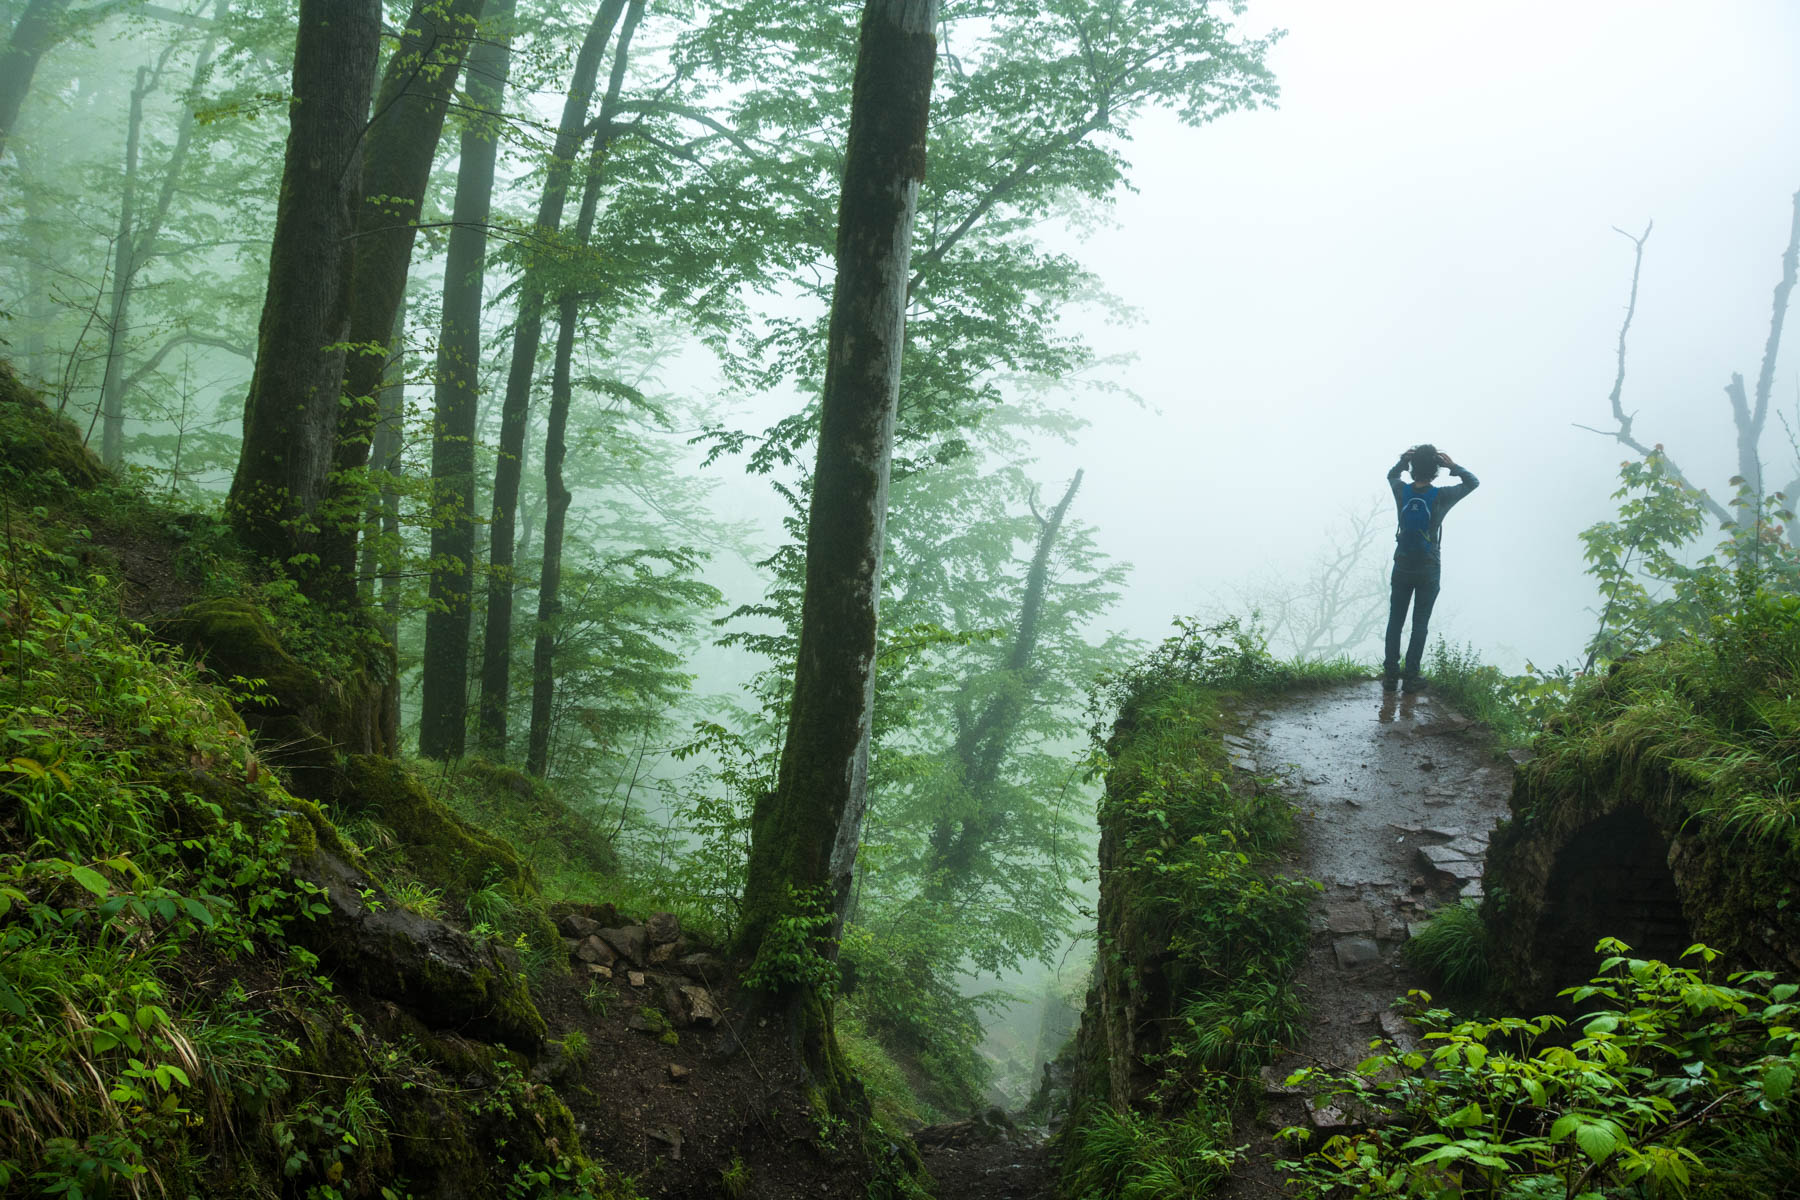 Misty anonymity at Qaleh Rudkhan in Iran - Why you should always use a VPN, even when not traveling - Lost With Purpose